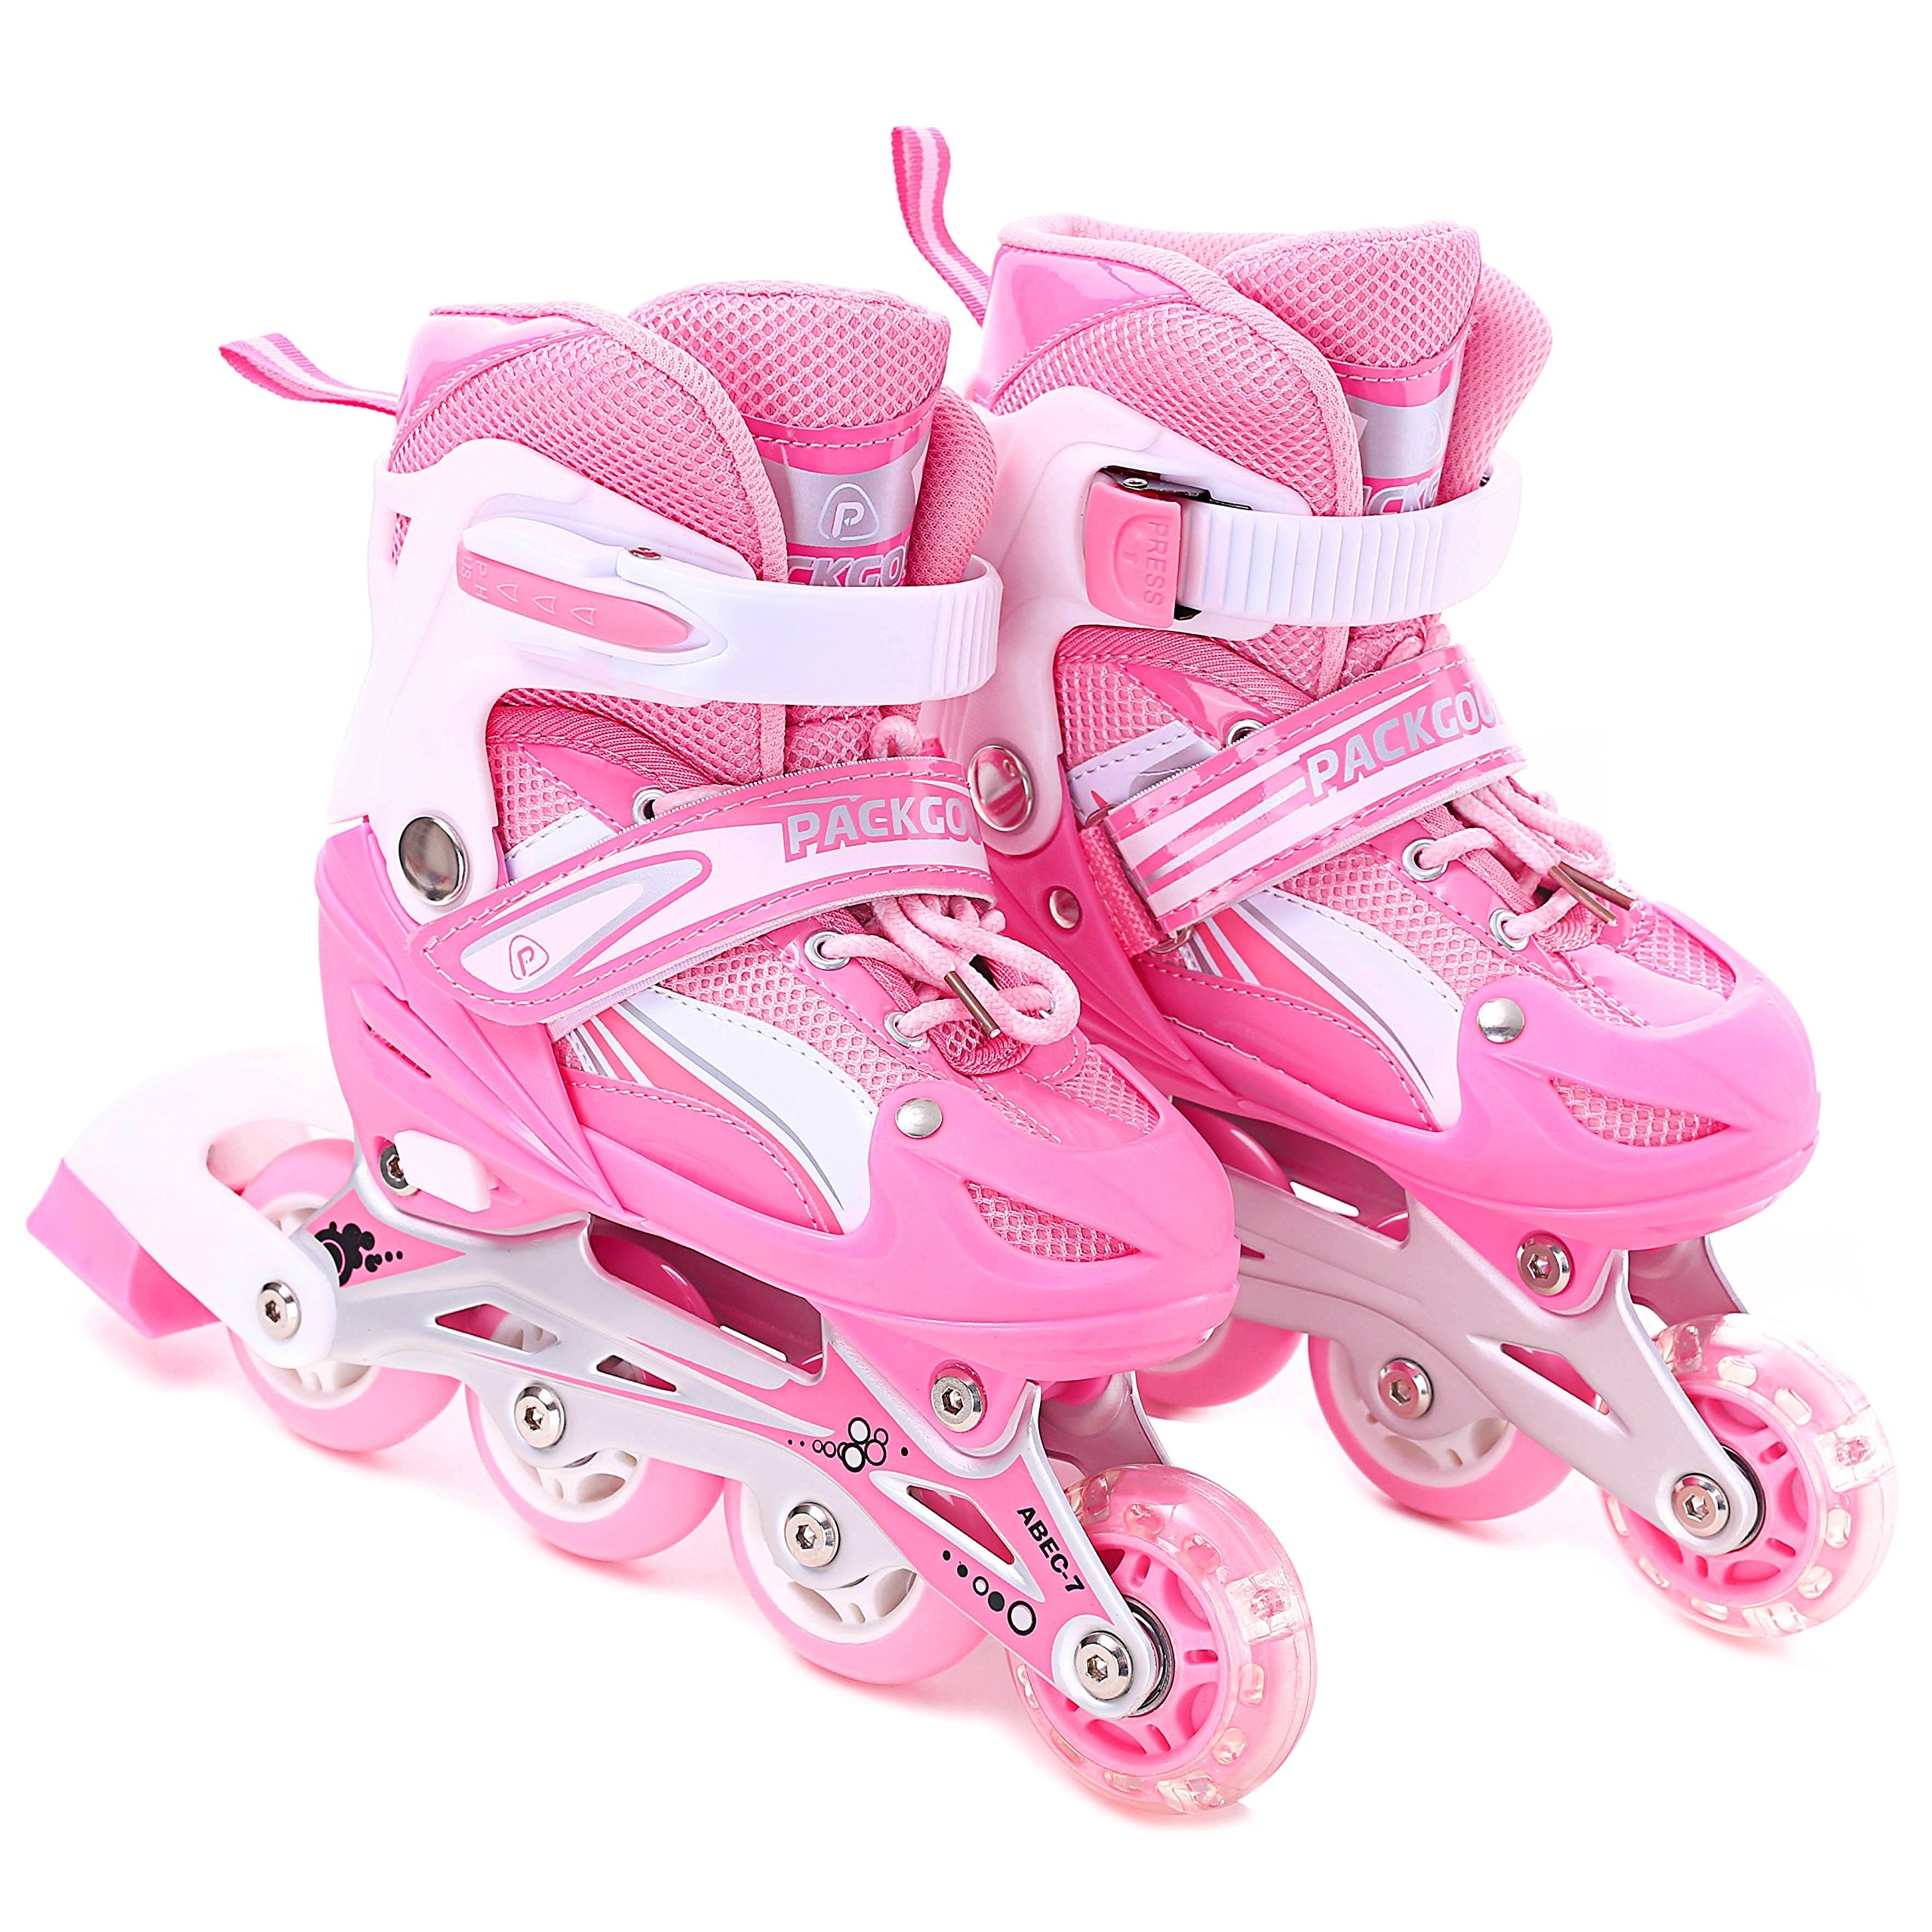 Girls Inline Skates Adjustable Rollerblades for Kids Girls Illuminating Wheel the Premium Breathable Mesh Roller Skates Double Secure Lock